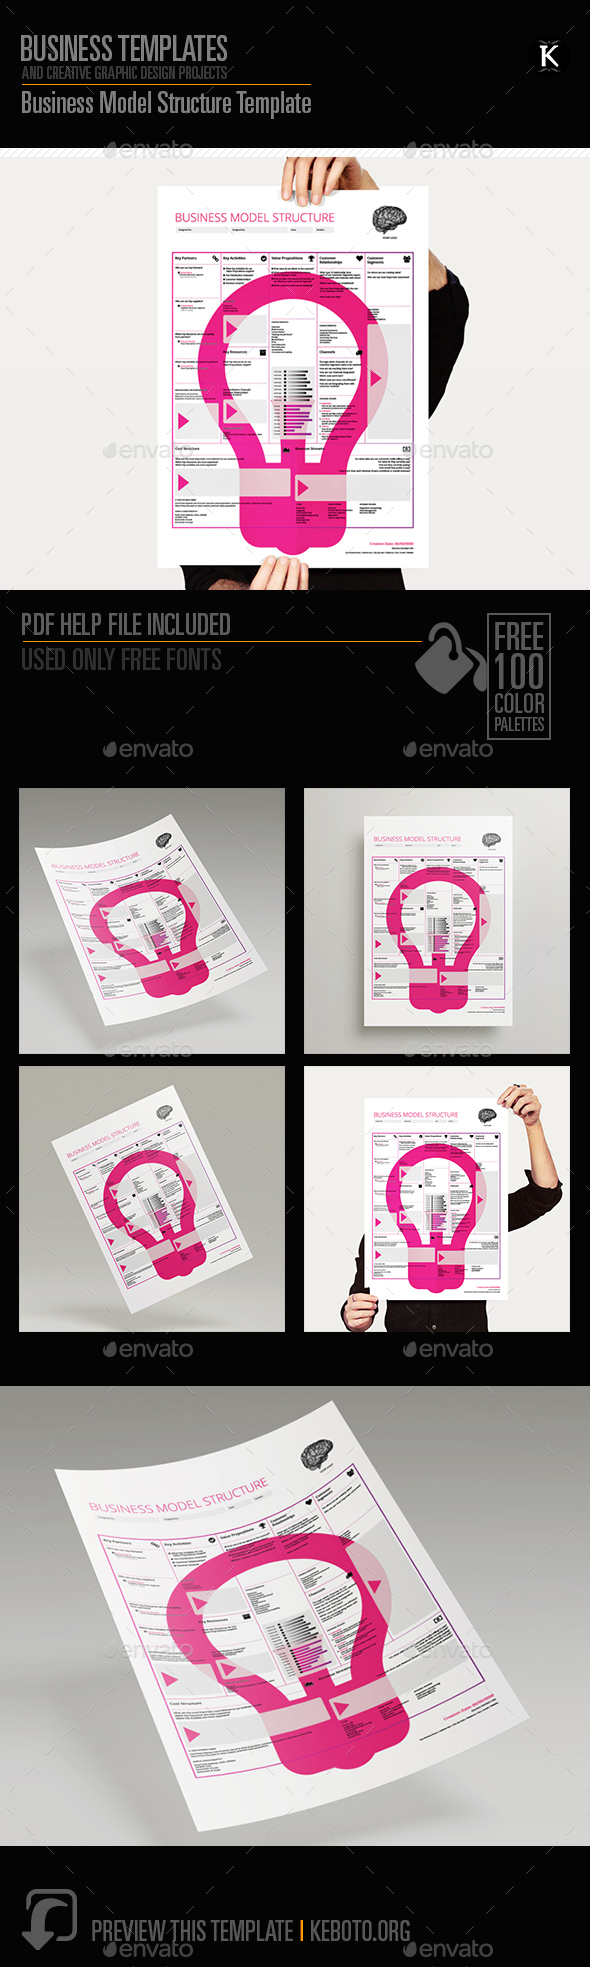 Business Model Structure Template - Miscellaneous Print Templates